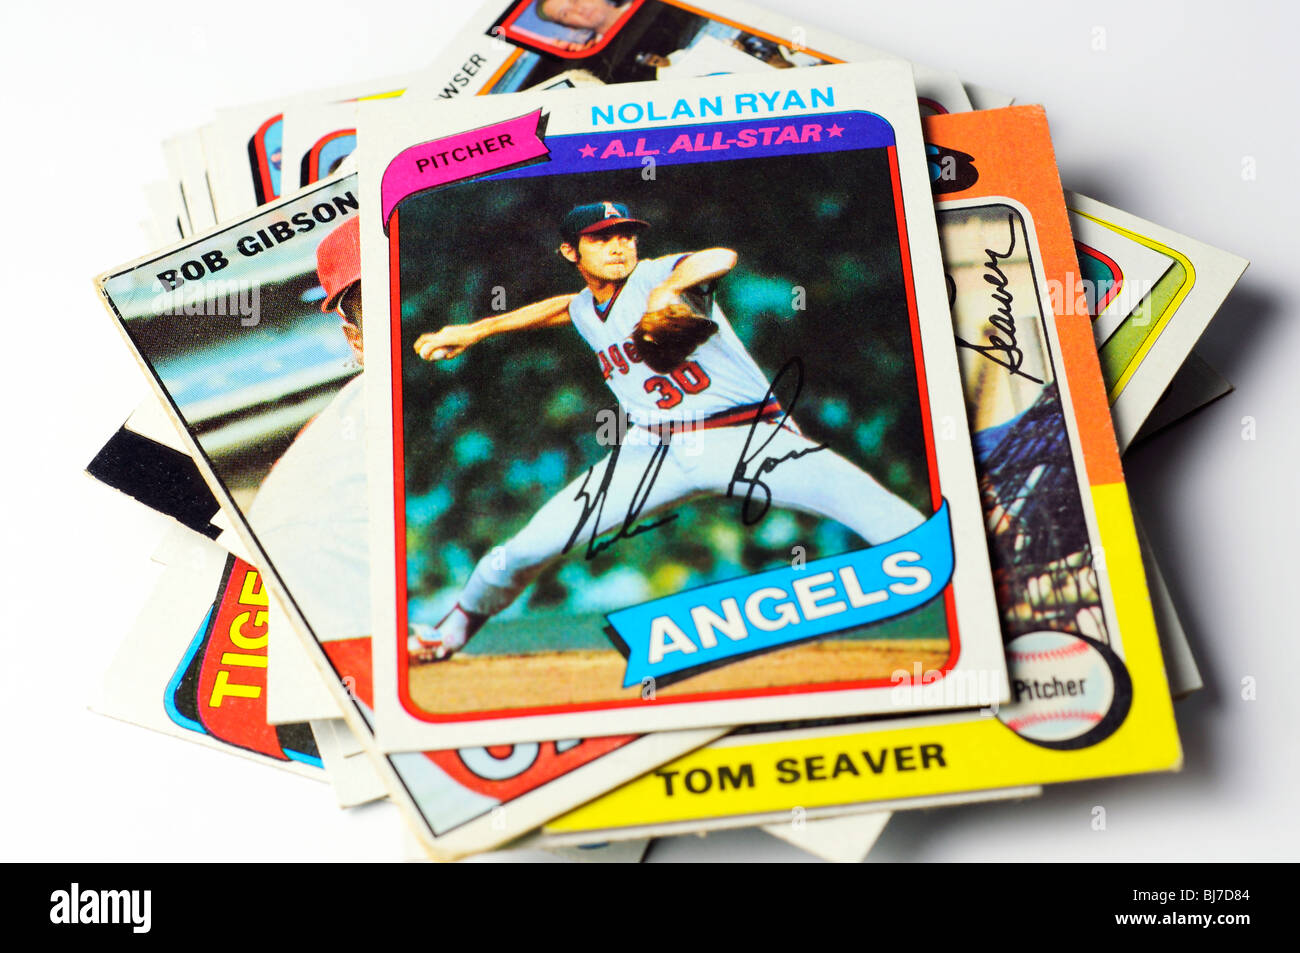 Collectible Baseball Cards Stock Photo 28438260 Alamy